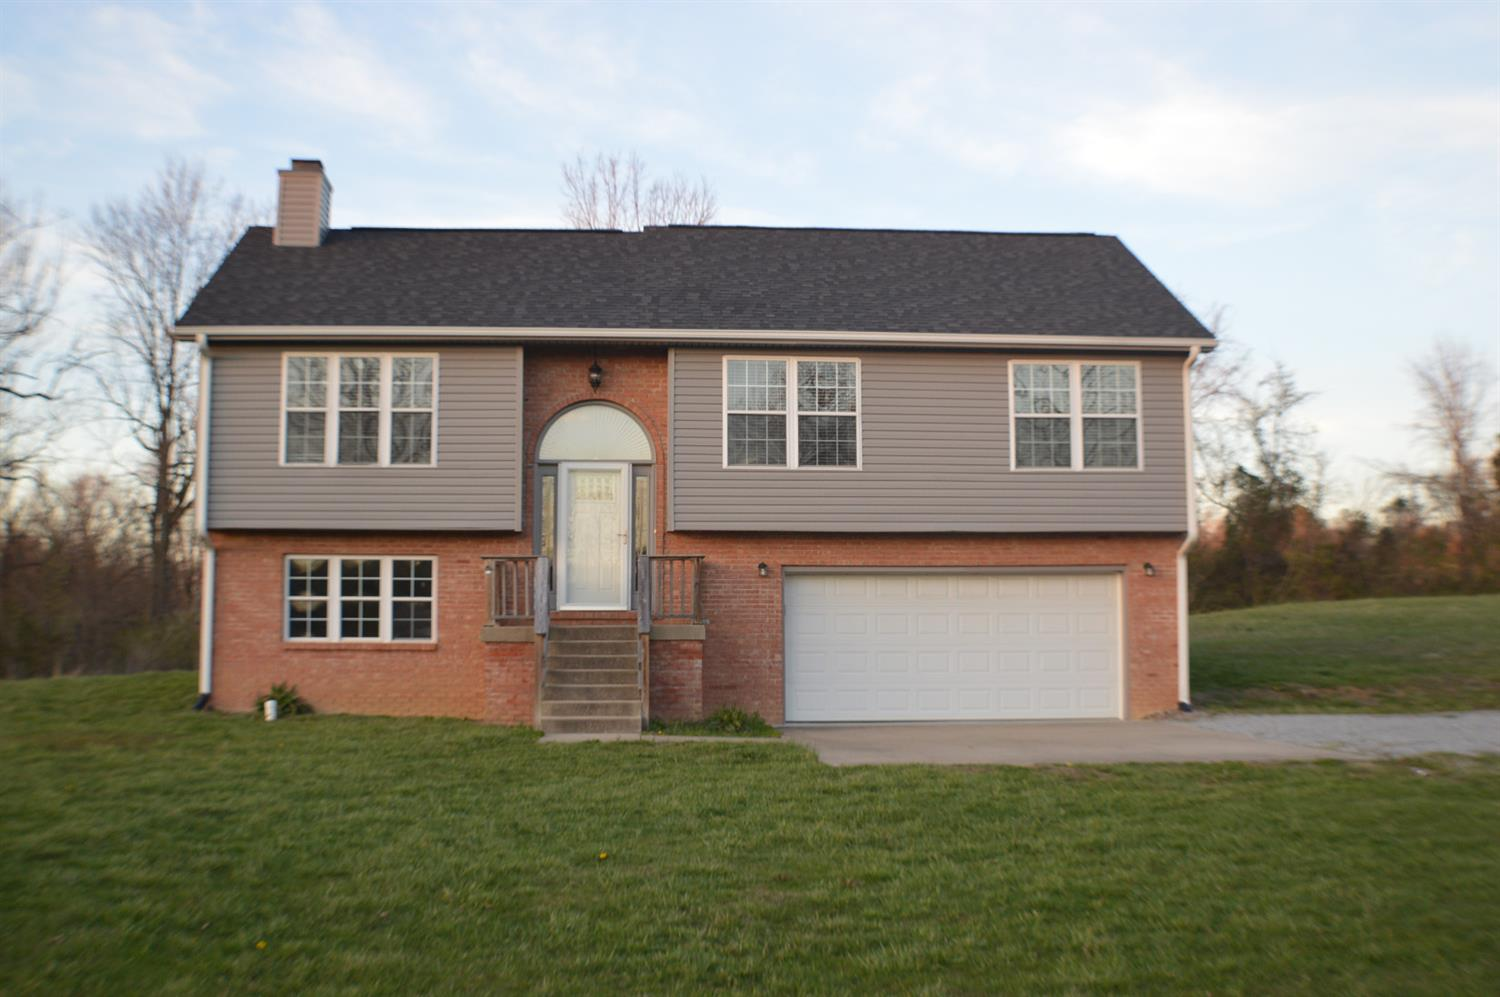 Home For Sale at 130 Indian Springs Trl, Lancaster, KY 40444